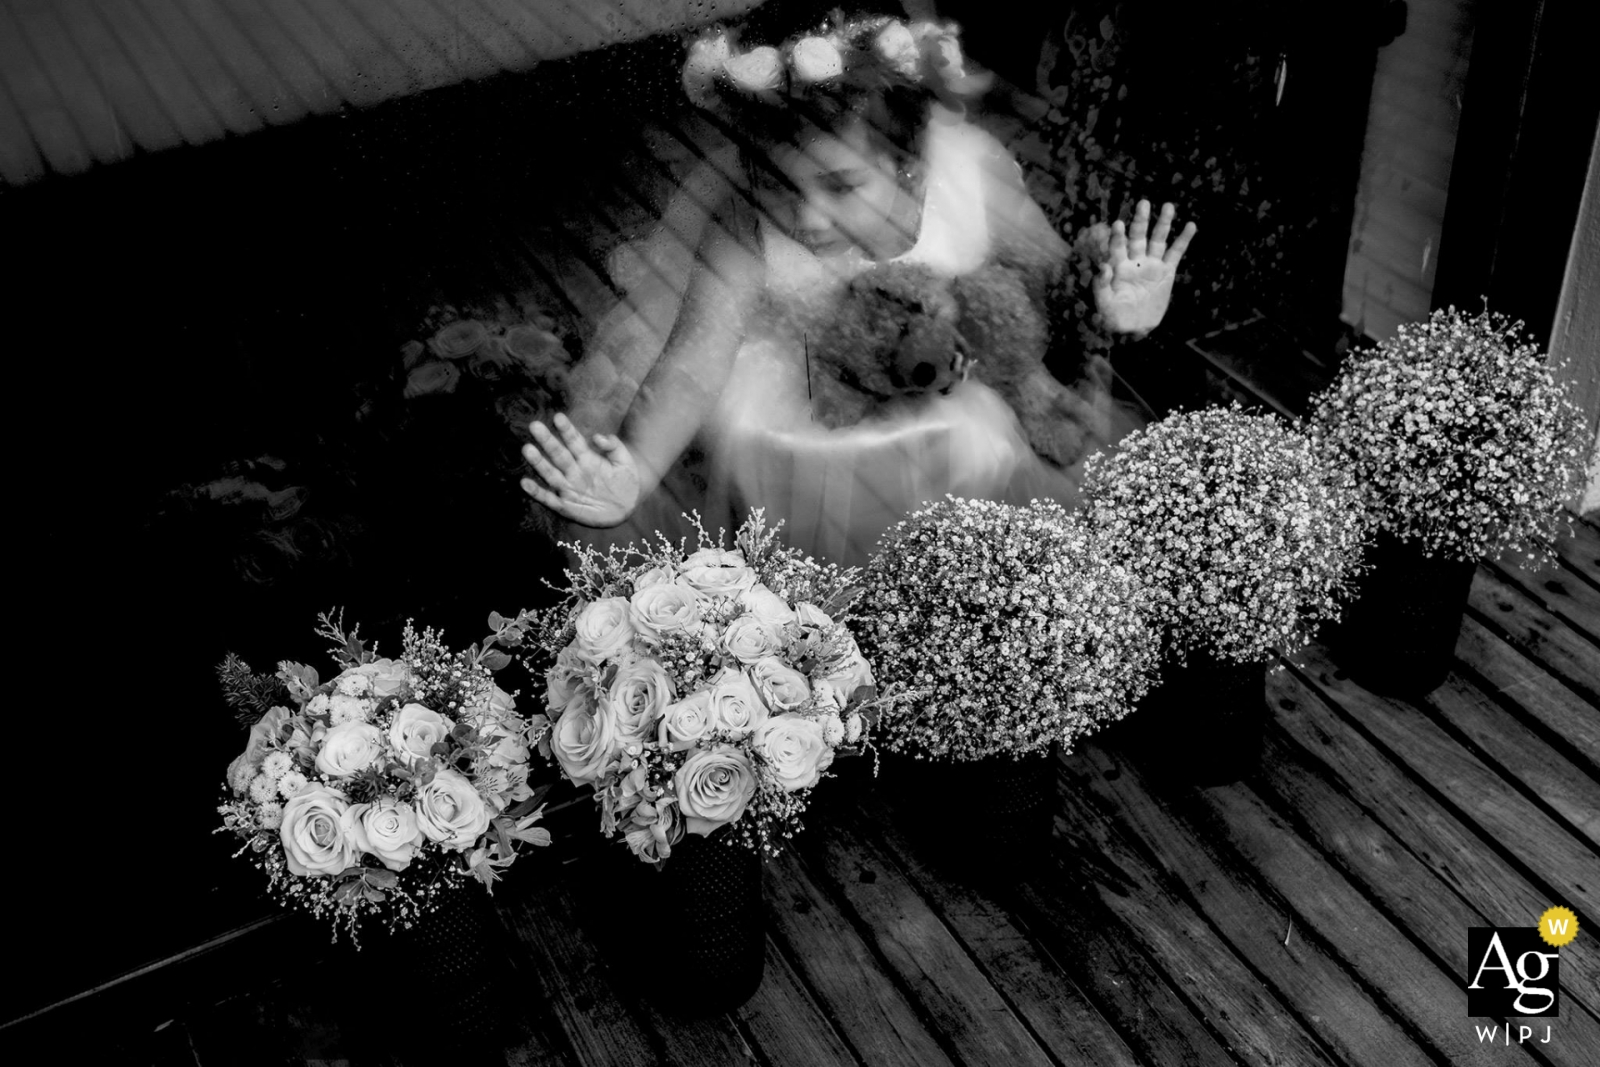 nha trang wedding photographer | the flower girl looks through the glass window at five bouquets